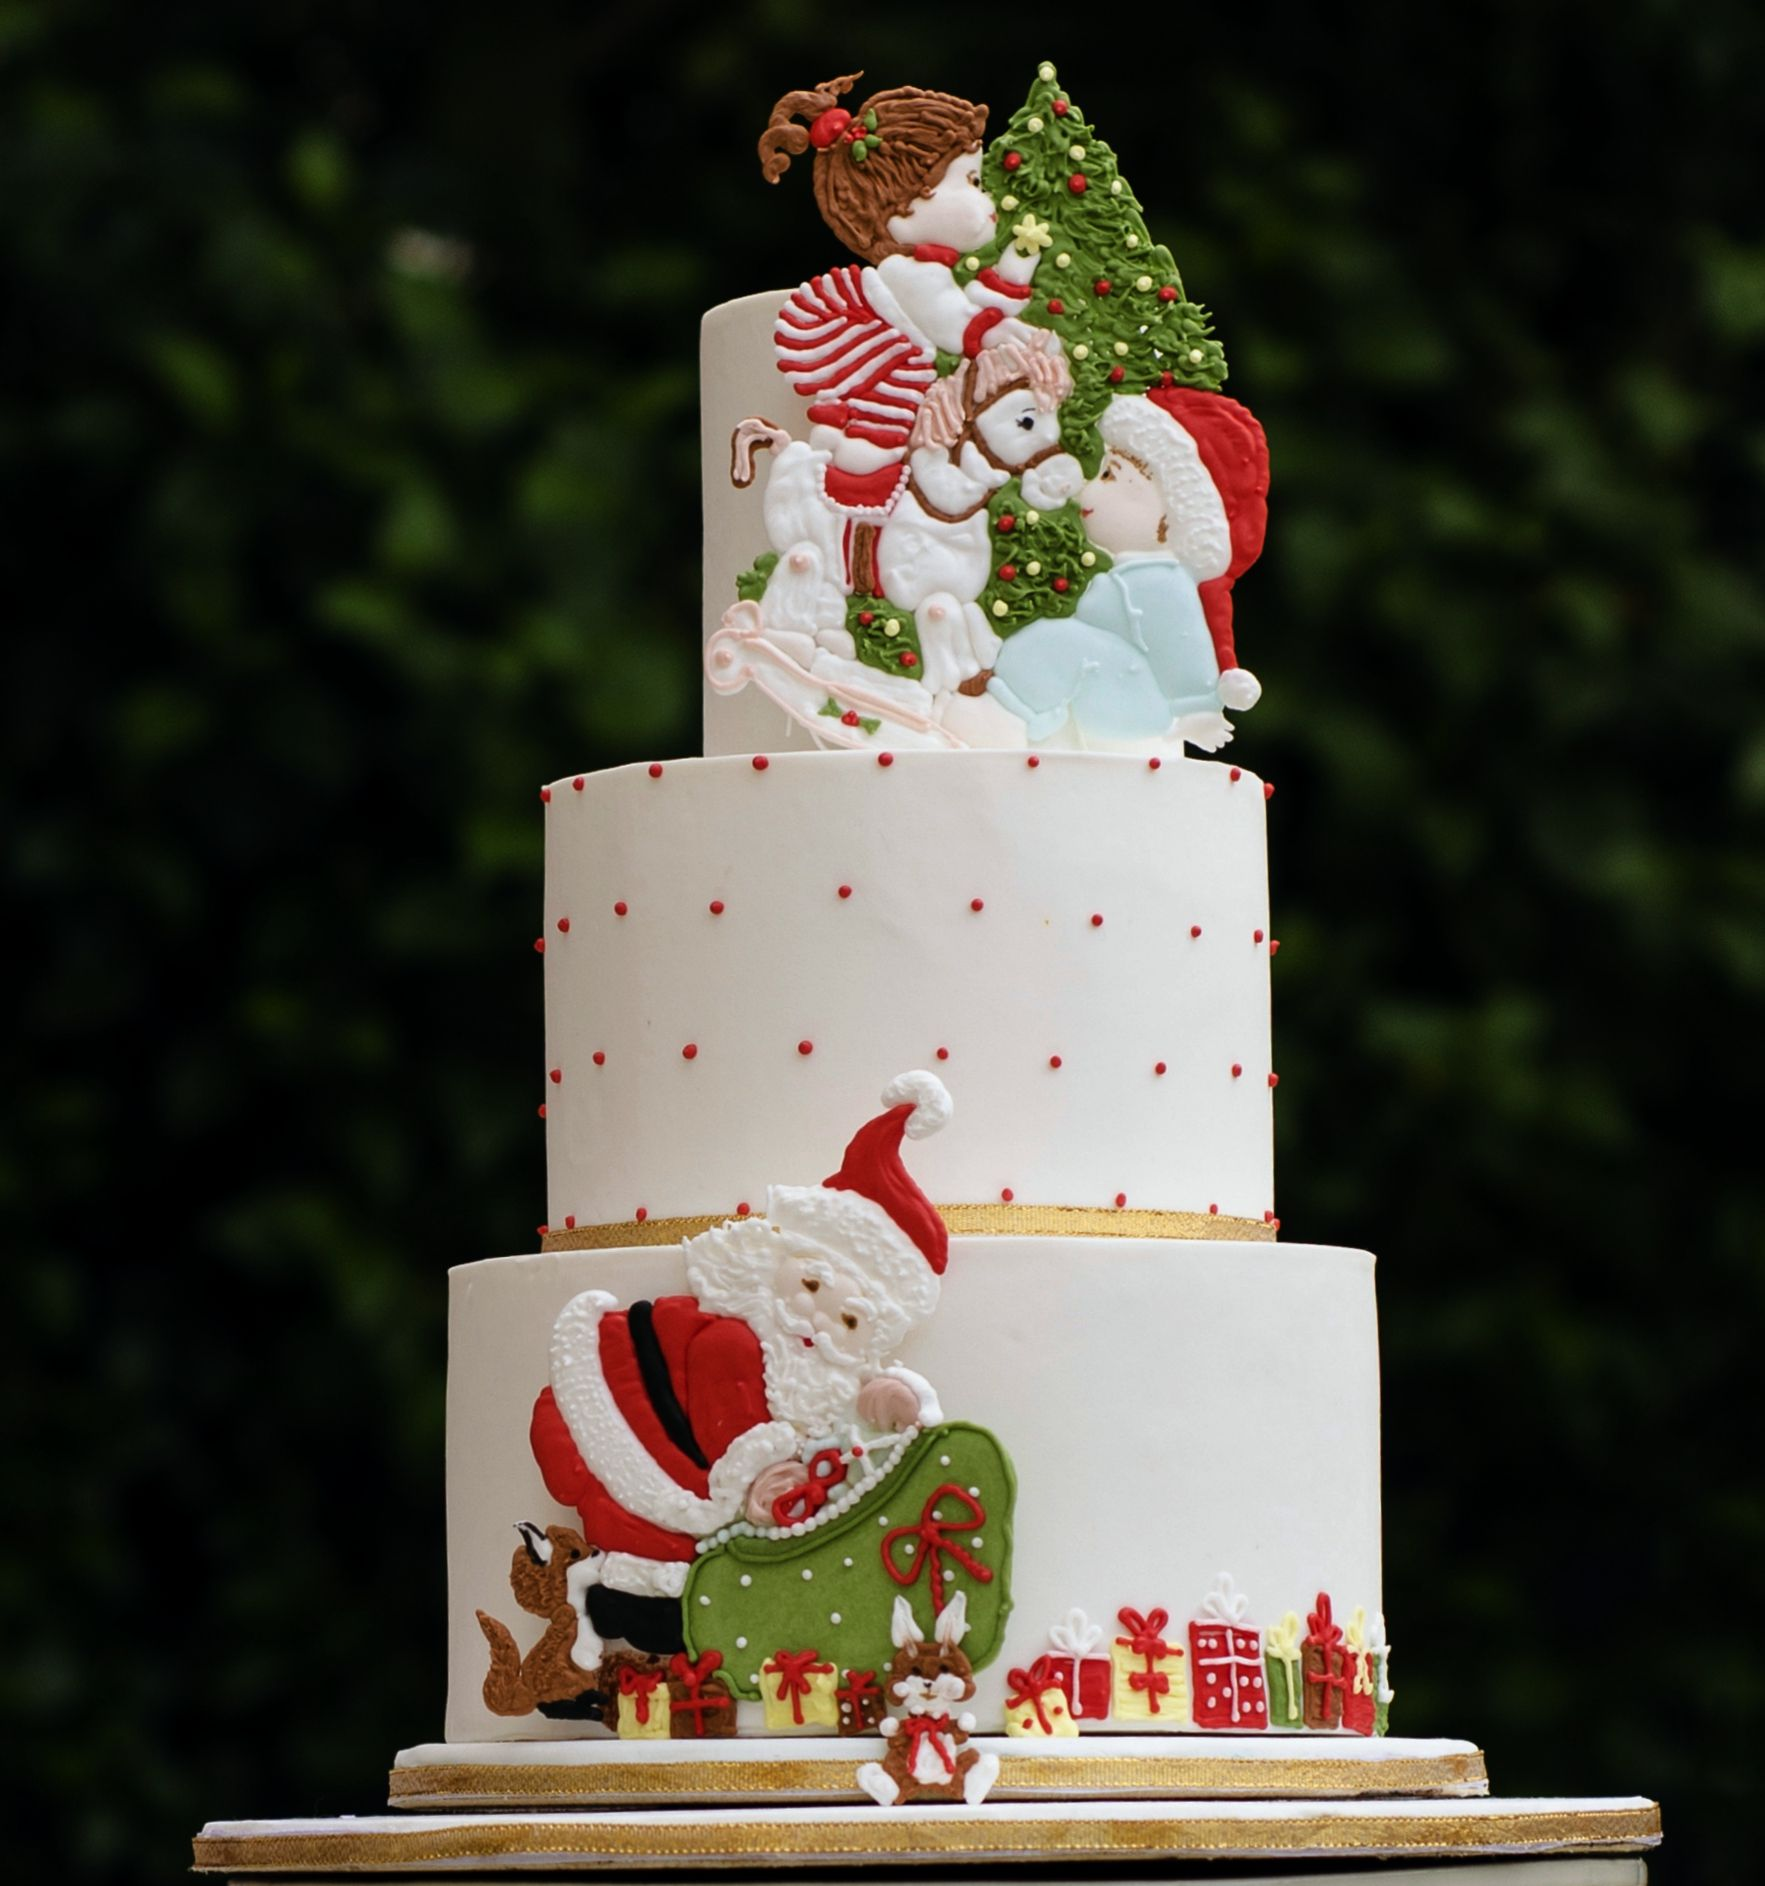 Cake decorating holidays uk